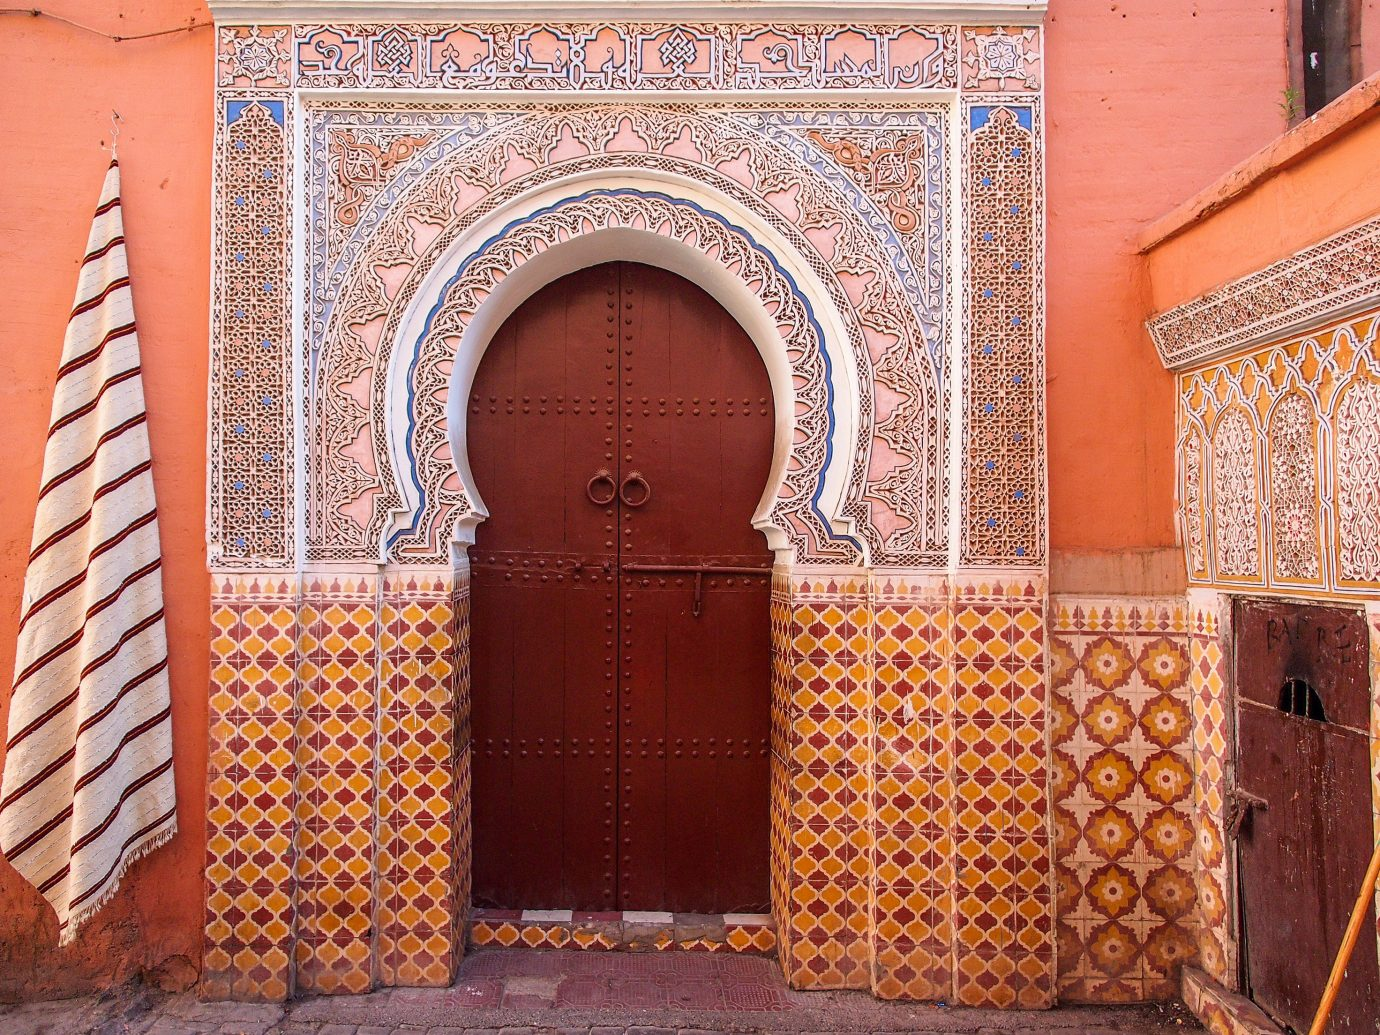 Offbeat color outdoor building wall Architecture arch brick facade palace ancient history interior design temple place of worship synagogue orange colored